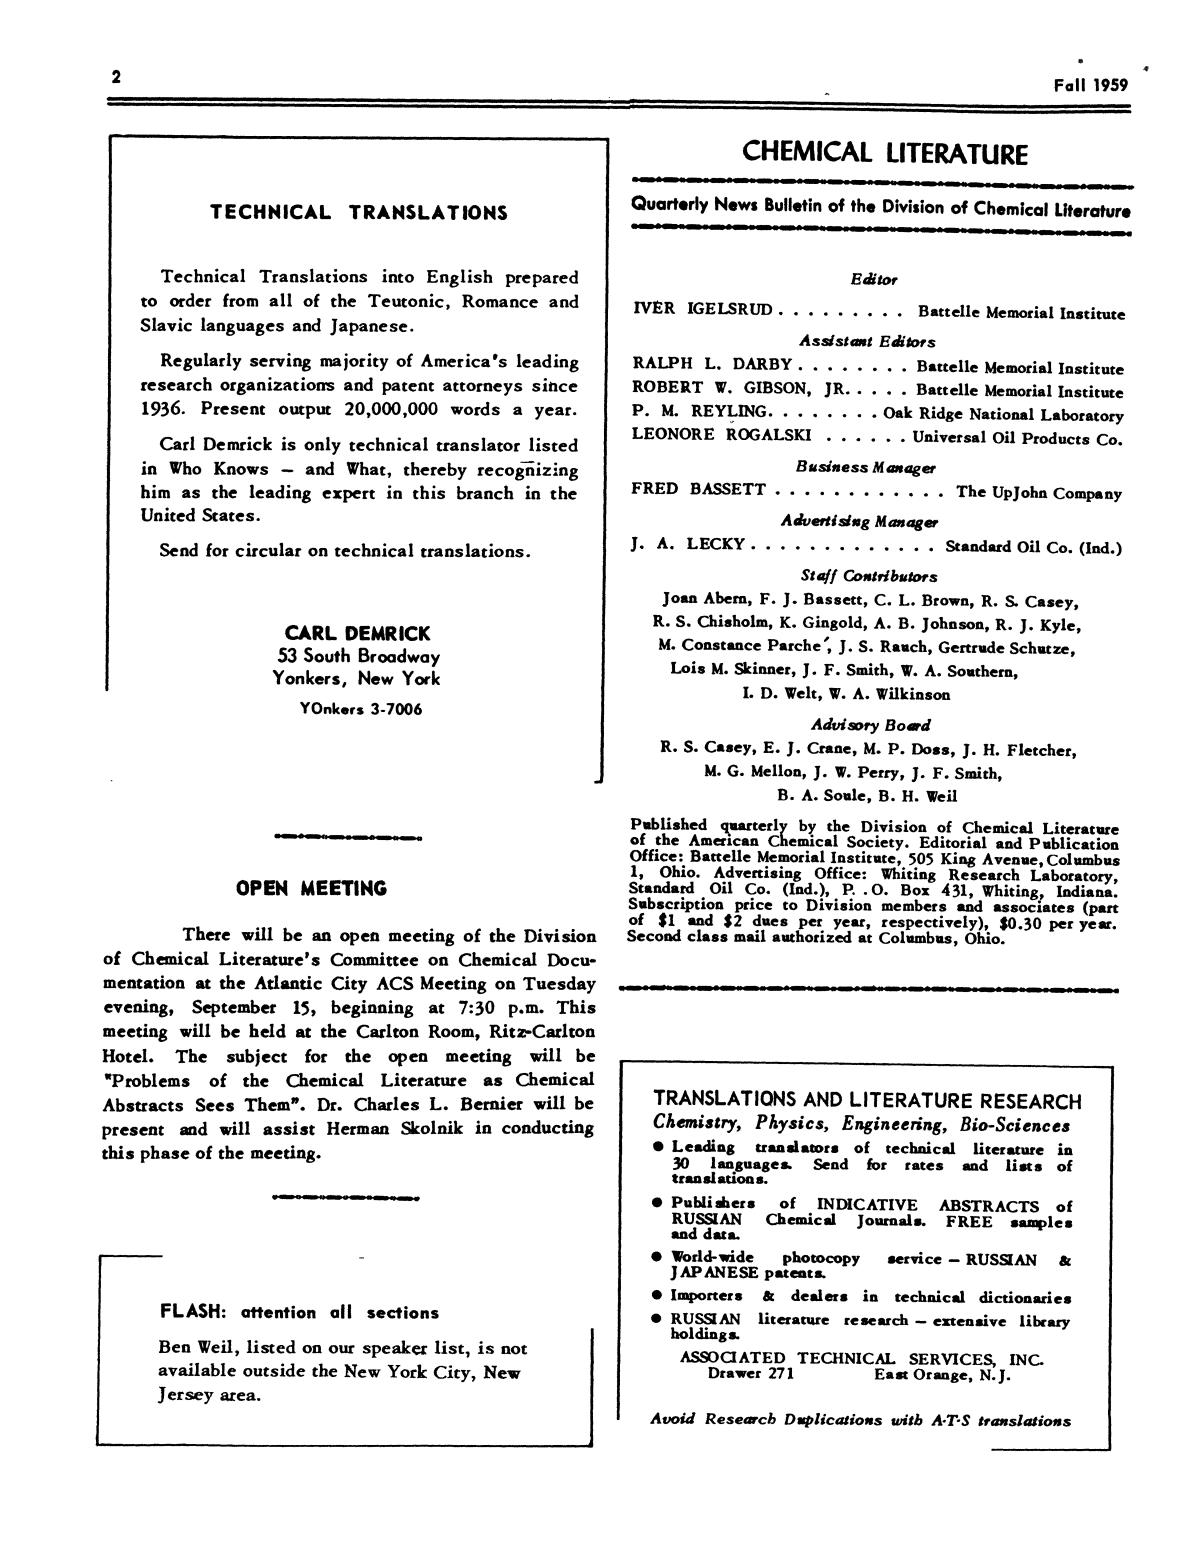 Chemical Literature, Volume 11, Number 3, Fall 1959                                                                                                      2